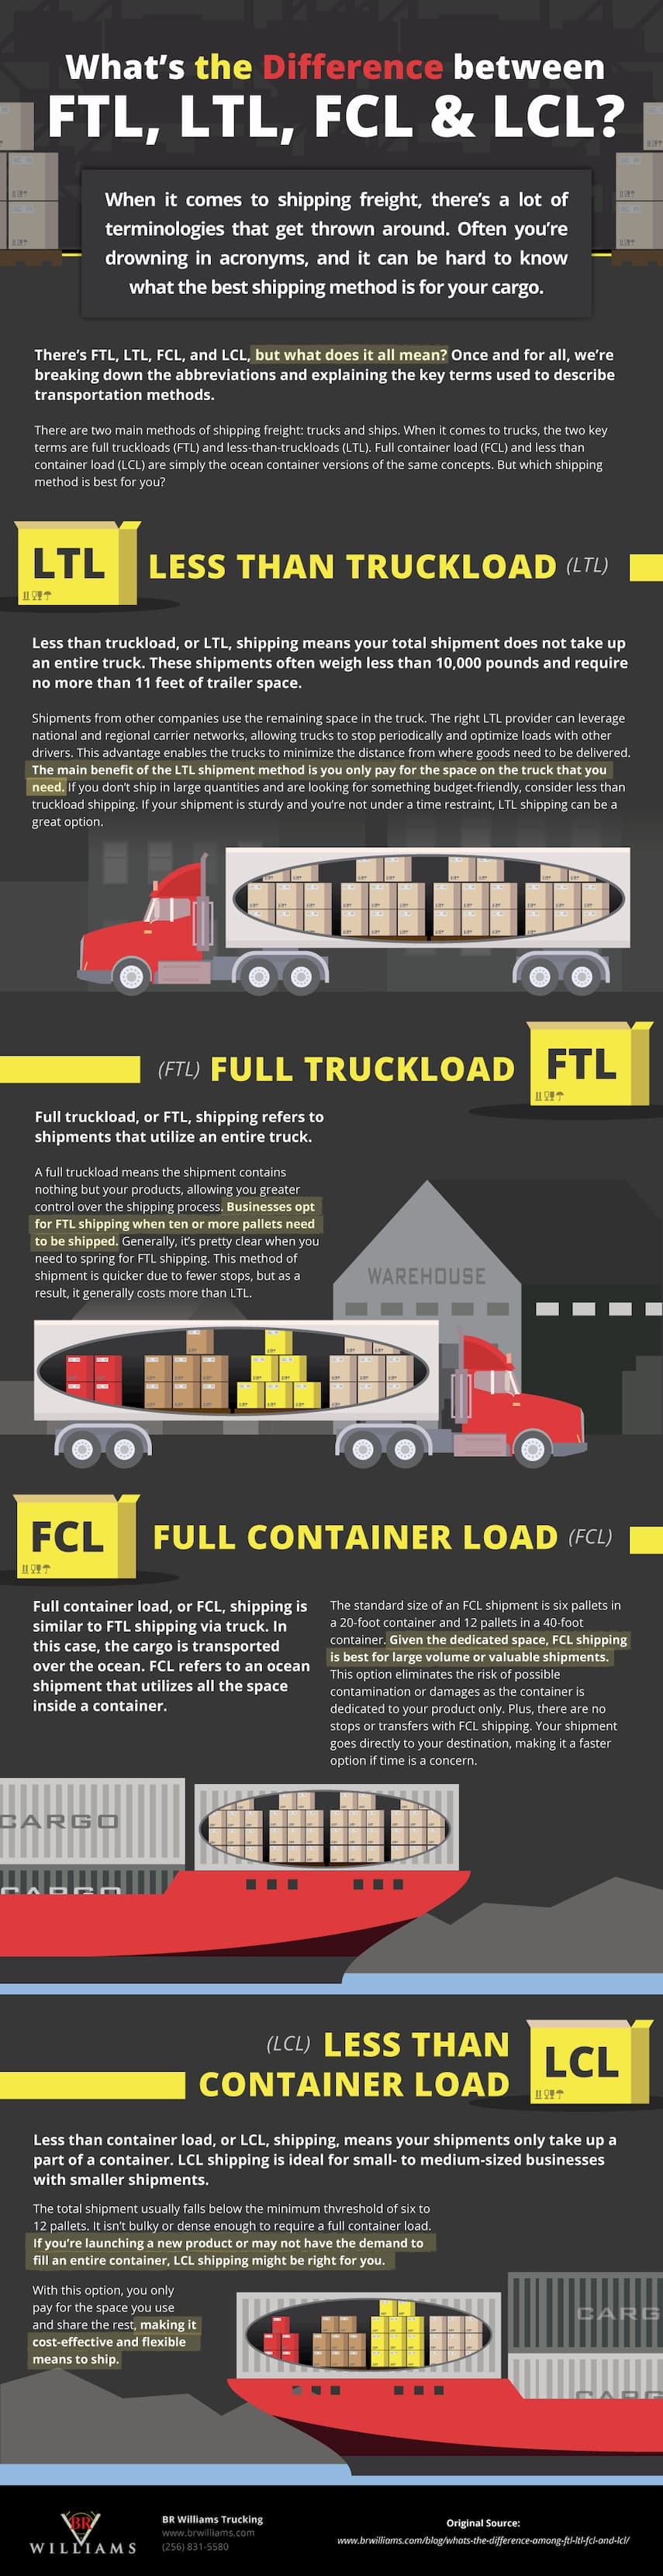 The difference between FTL, LTL, FCL, and LCL shipping infographic